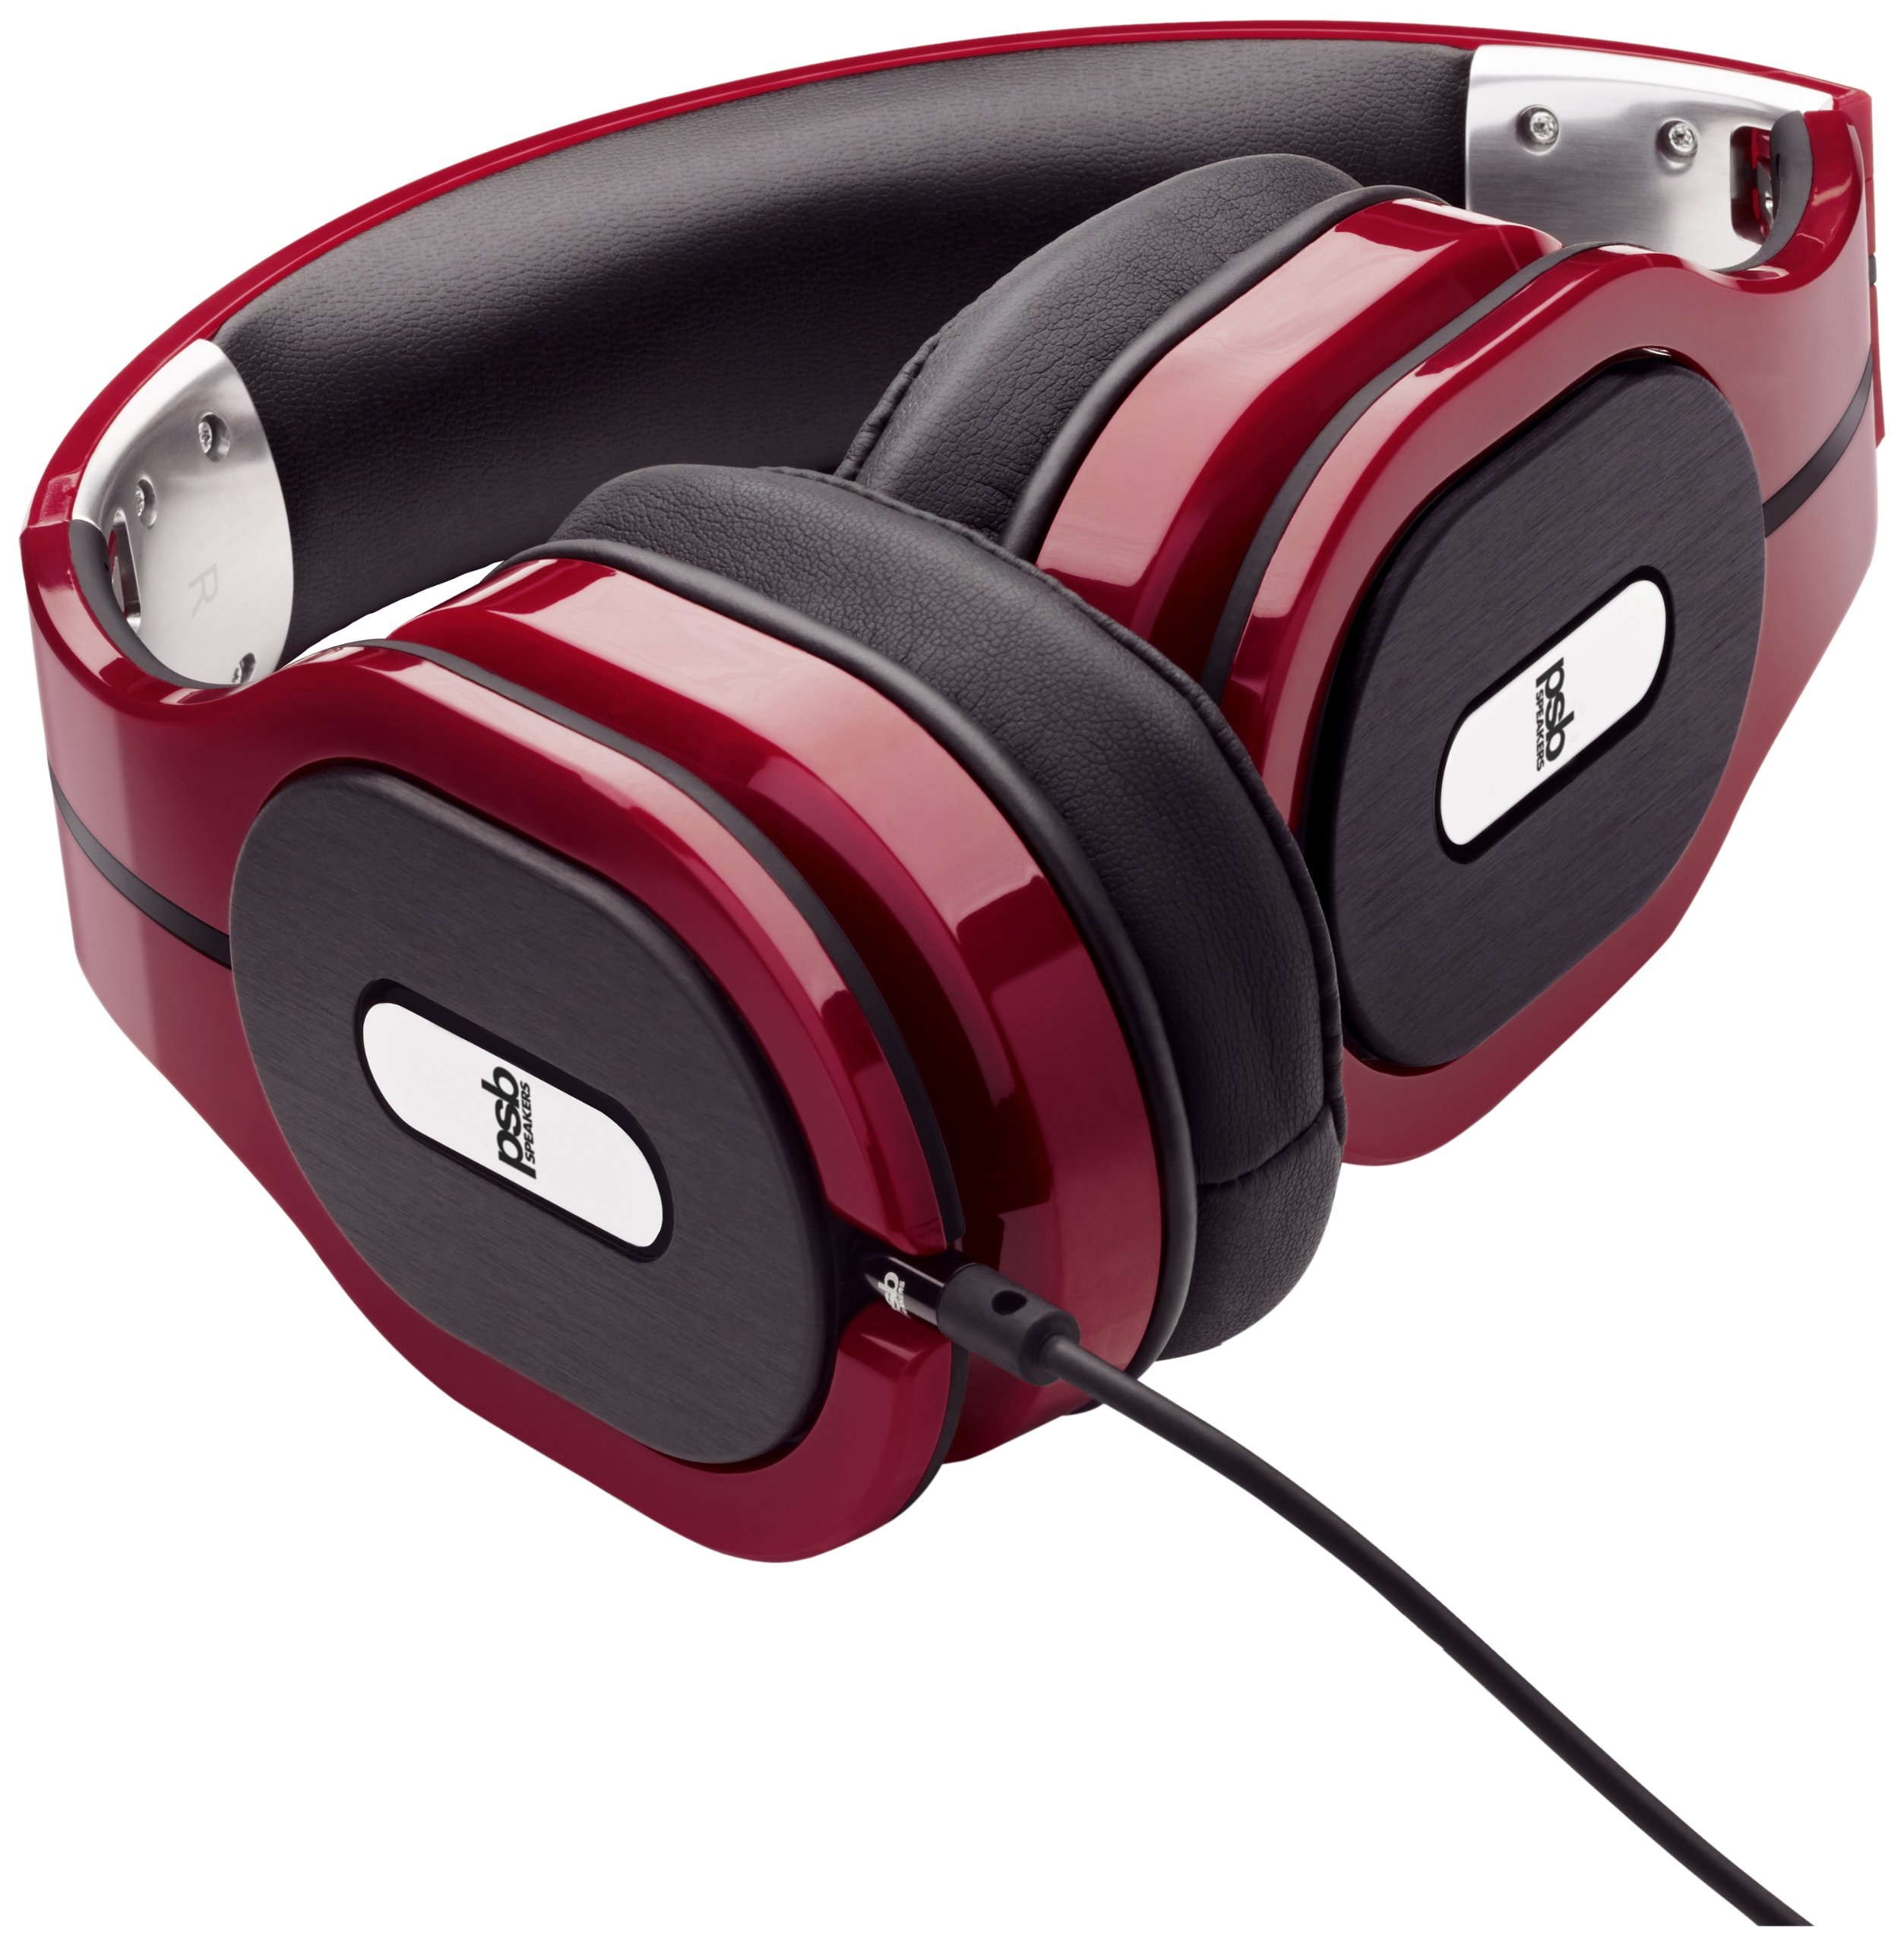 Auriculares PSB M4U-1 RED M4U 1 High Performance Over-Ear Red